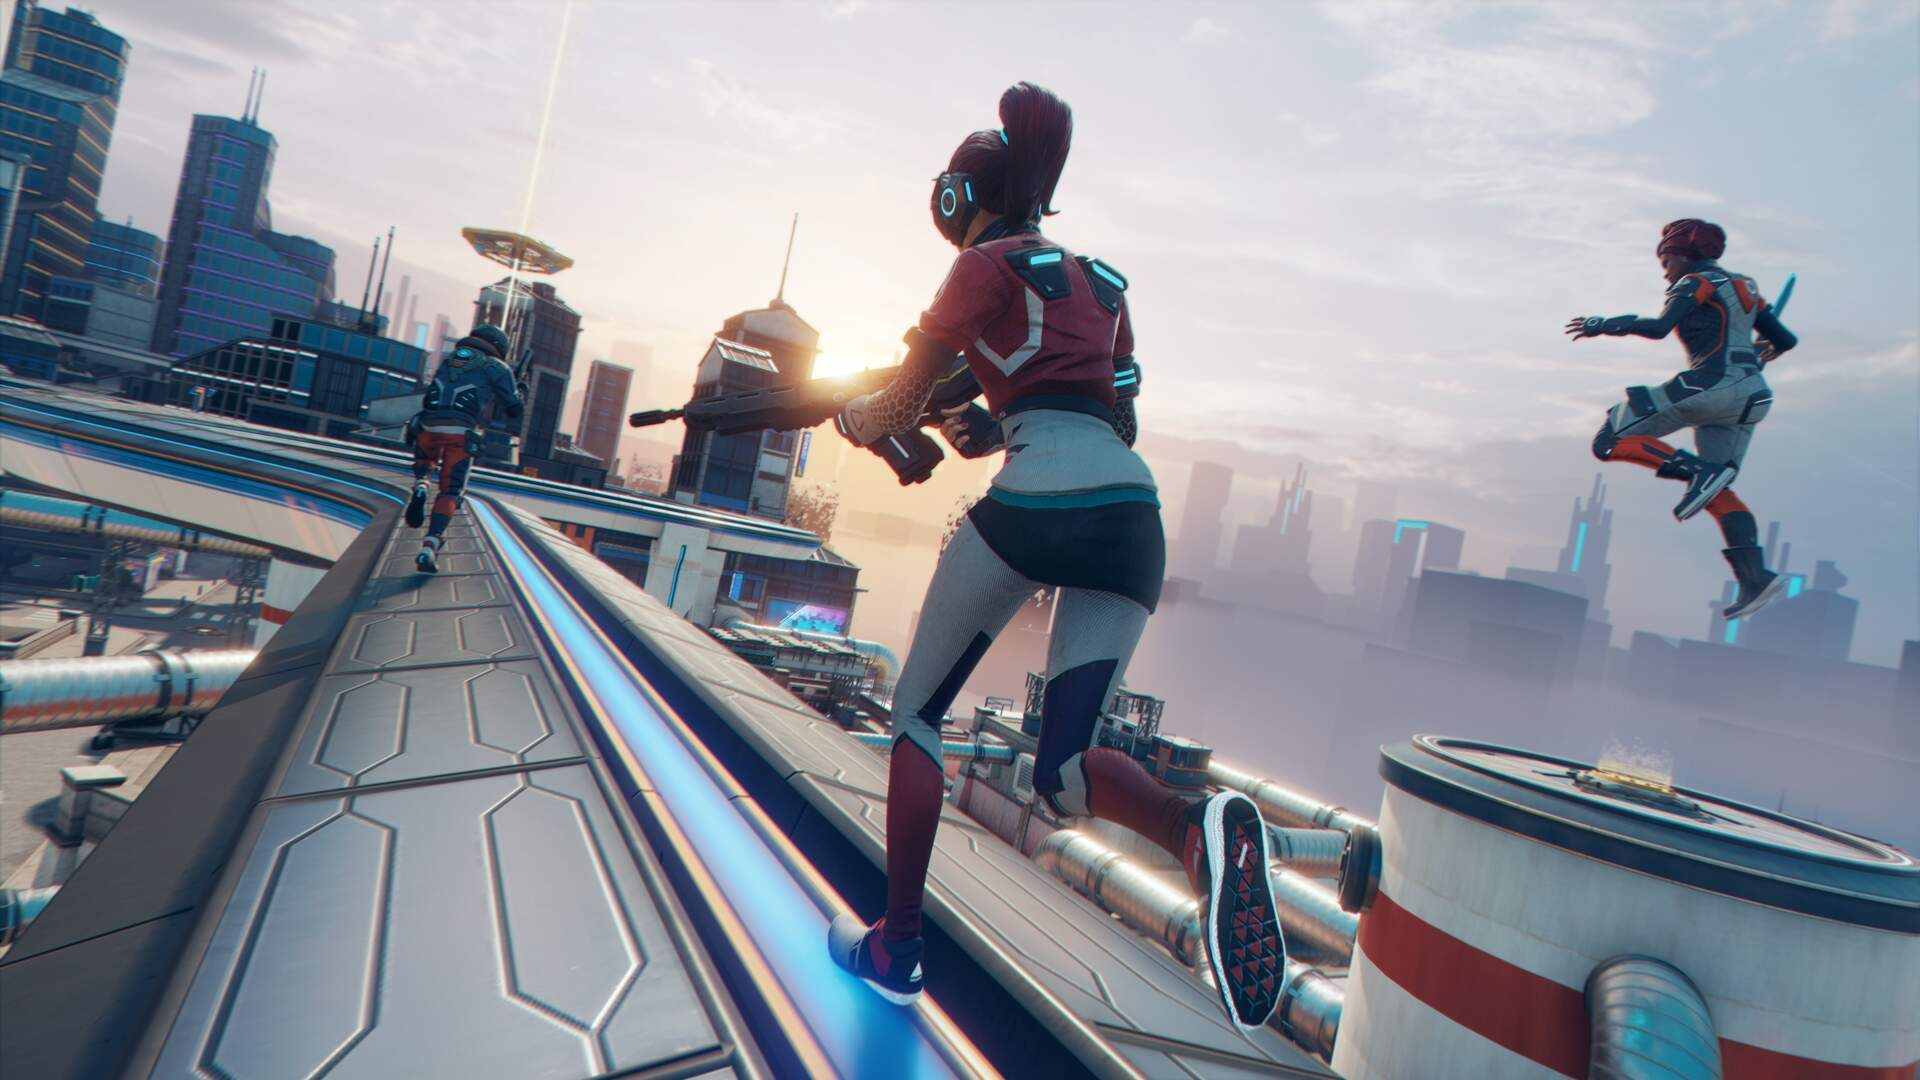 """Hyper Scape Team Says It's """"Taking Action"""" on Game's Issues Heading Into Season 2"""